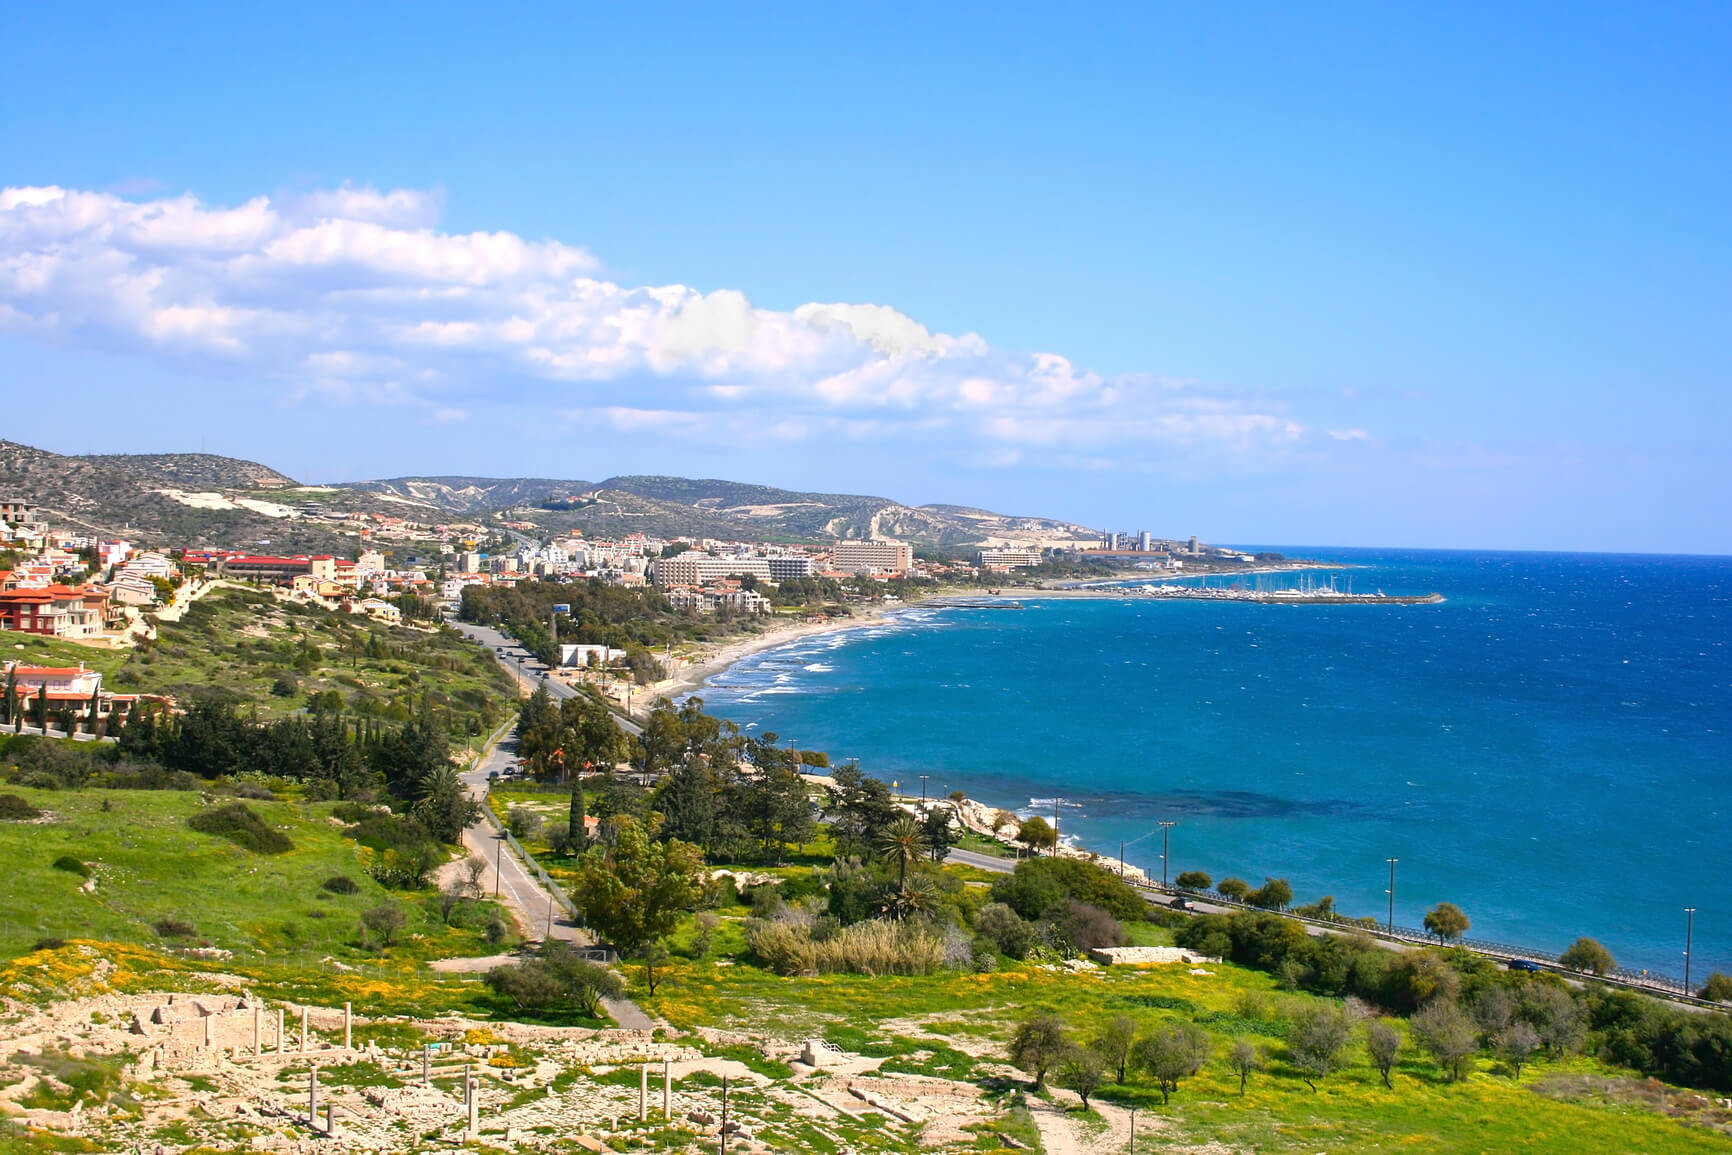 New York to Larnaca, Cyprus for only $467 roundtrip